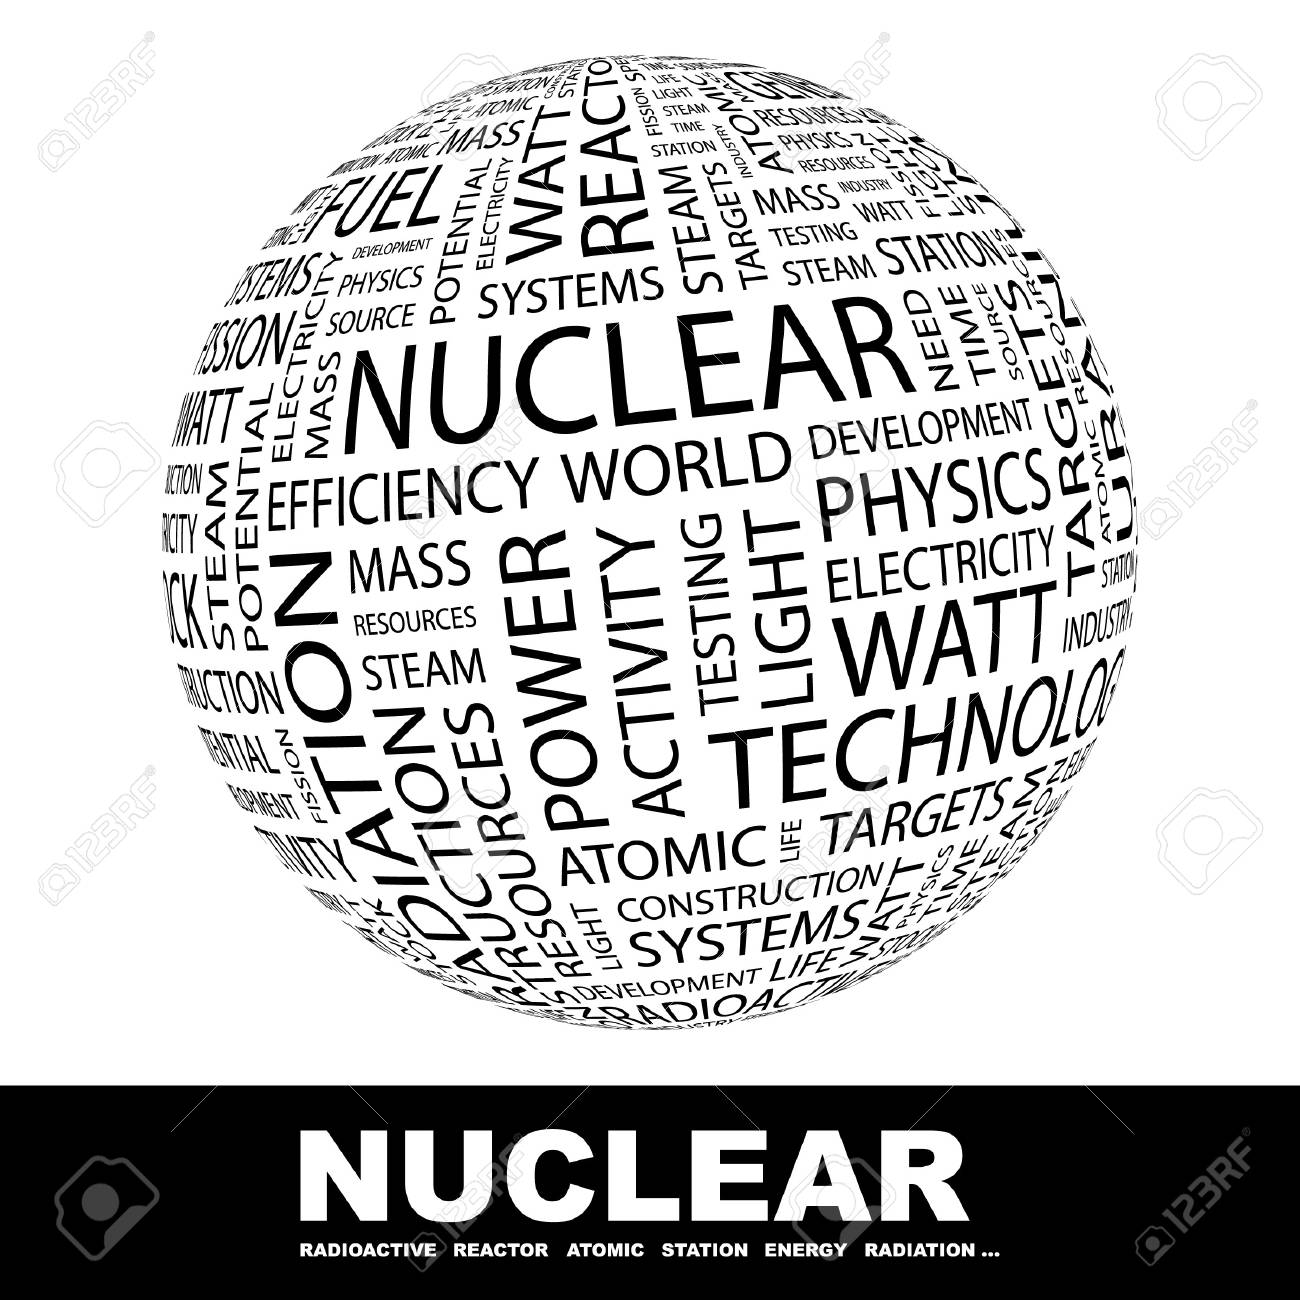 NUCLEAR. Globe with different association terms. Stock Photo - 8300455